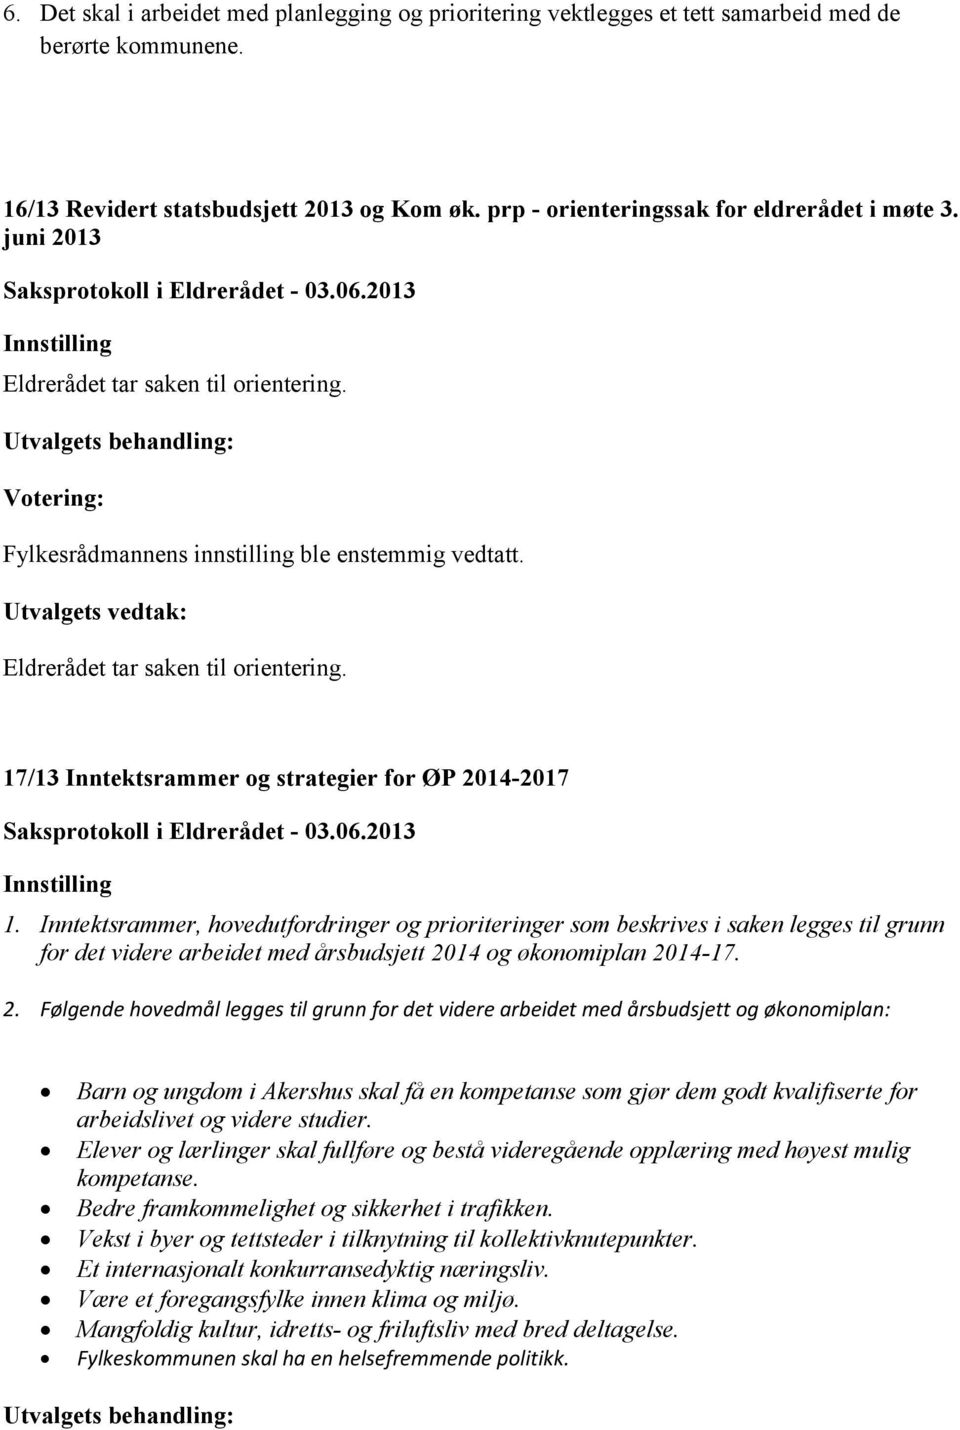 17/13 Inntektsrammer og strategier for ØP 2014-2017 1.